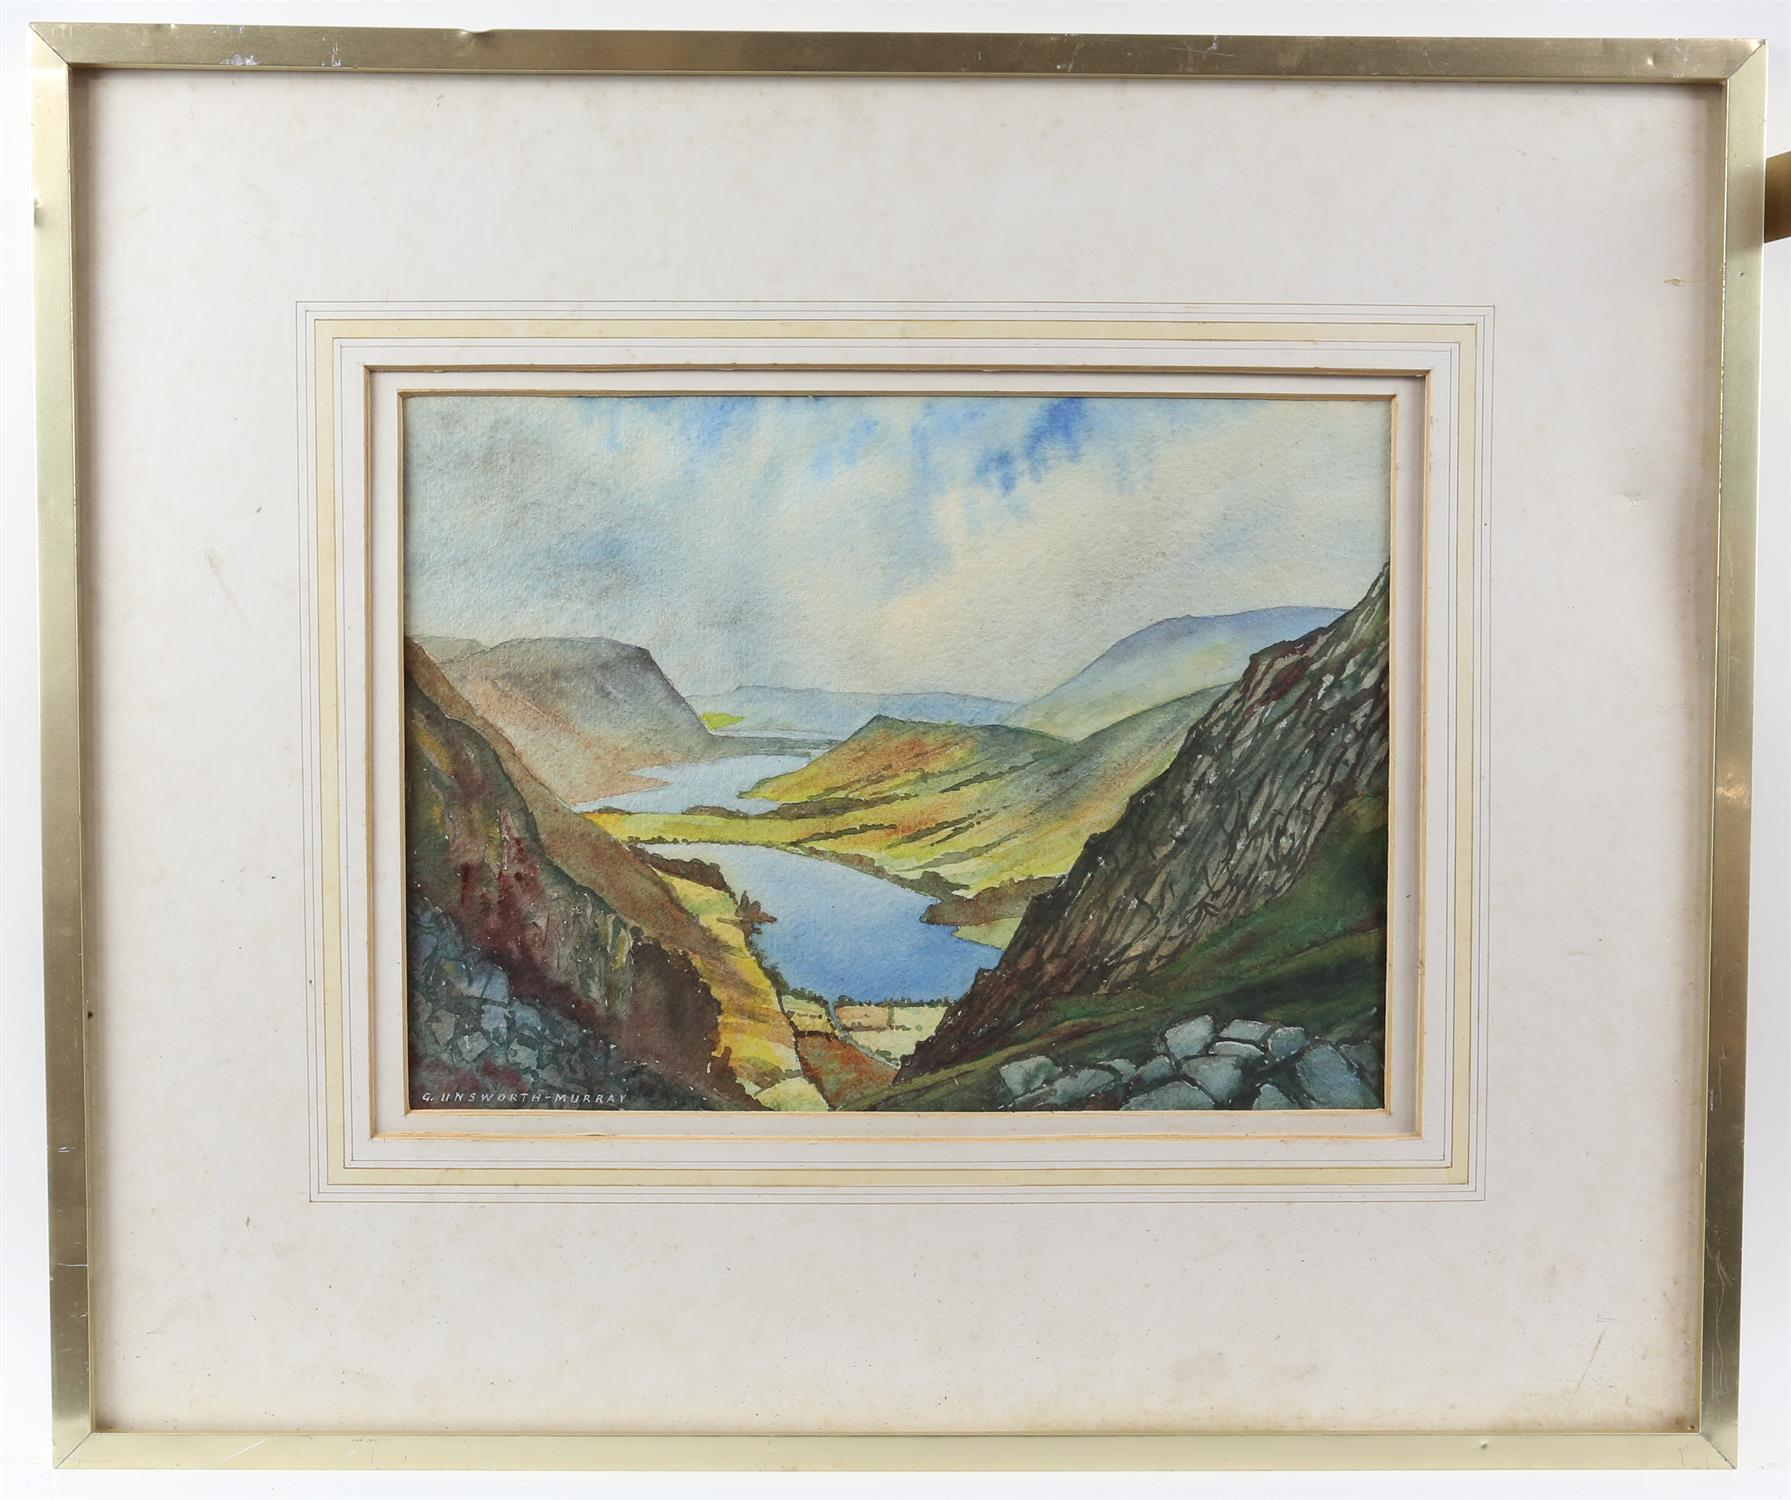 G Unsworth-Murray, British 20th century, 'Buttermere and Crummock Water', signed, watercolour, 26. - Image 2 of 3